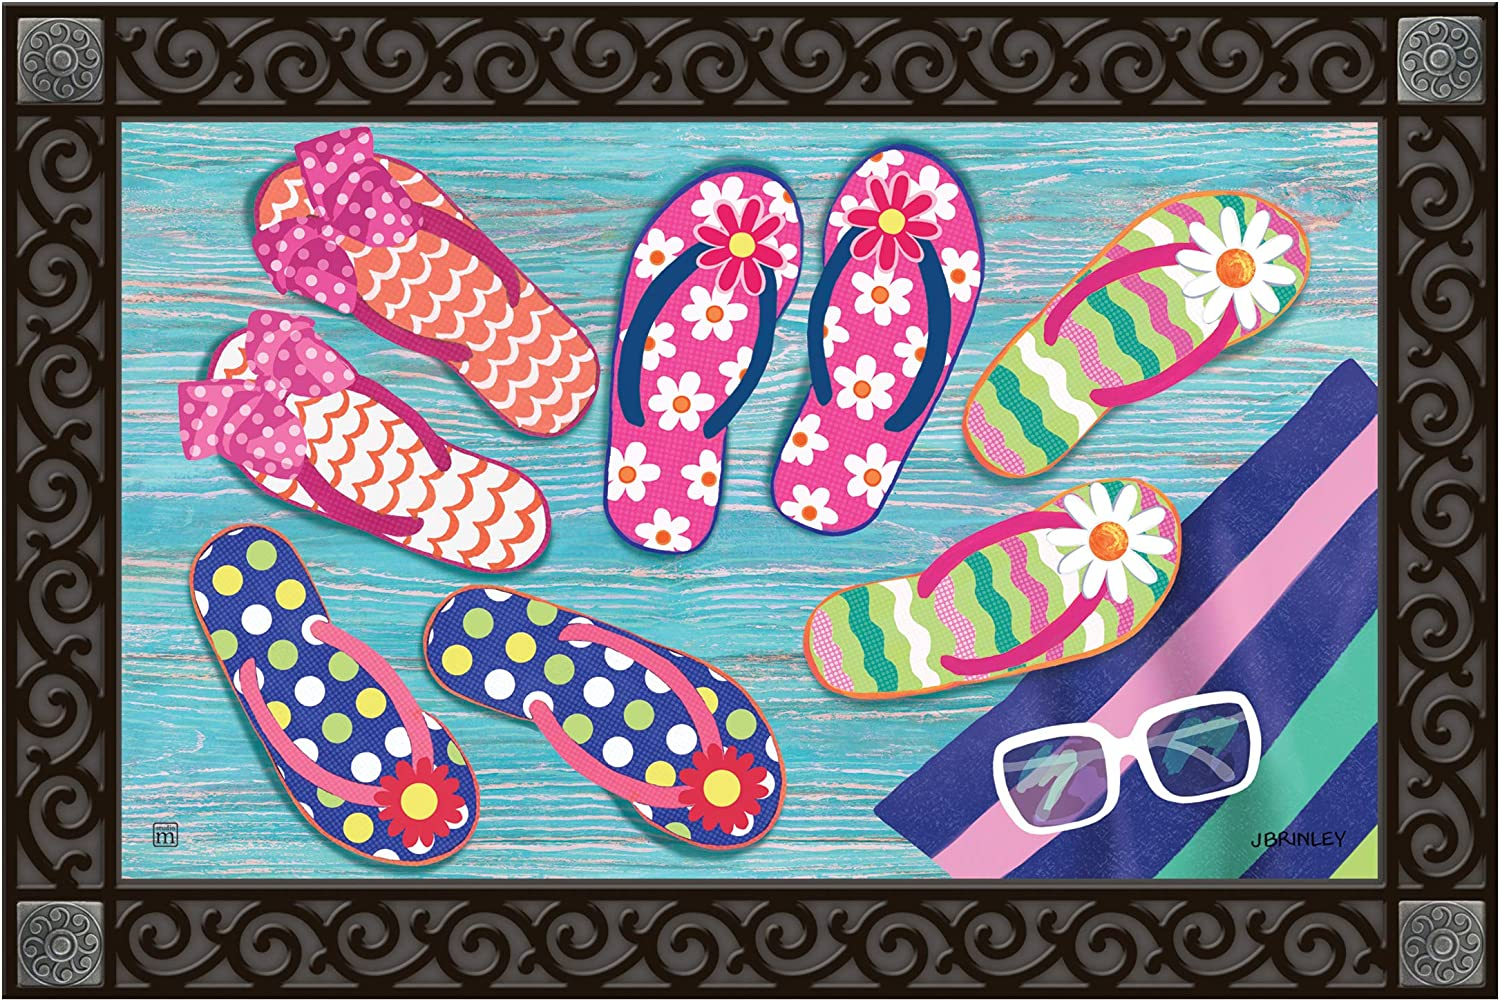 Studio M MatMates Flip Flop Frenzy Decorative Floor Mat Indoor or Outdoor Doormat with Eco-Friendly Recycled Rubber Backing, 18 x 30 Inches